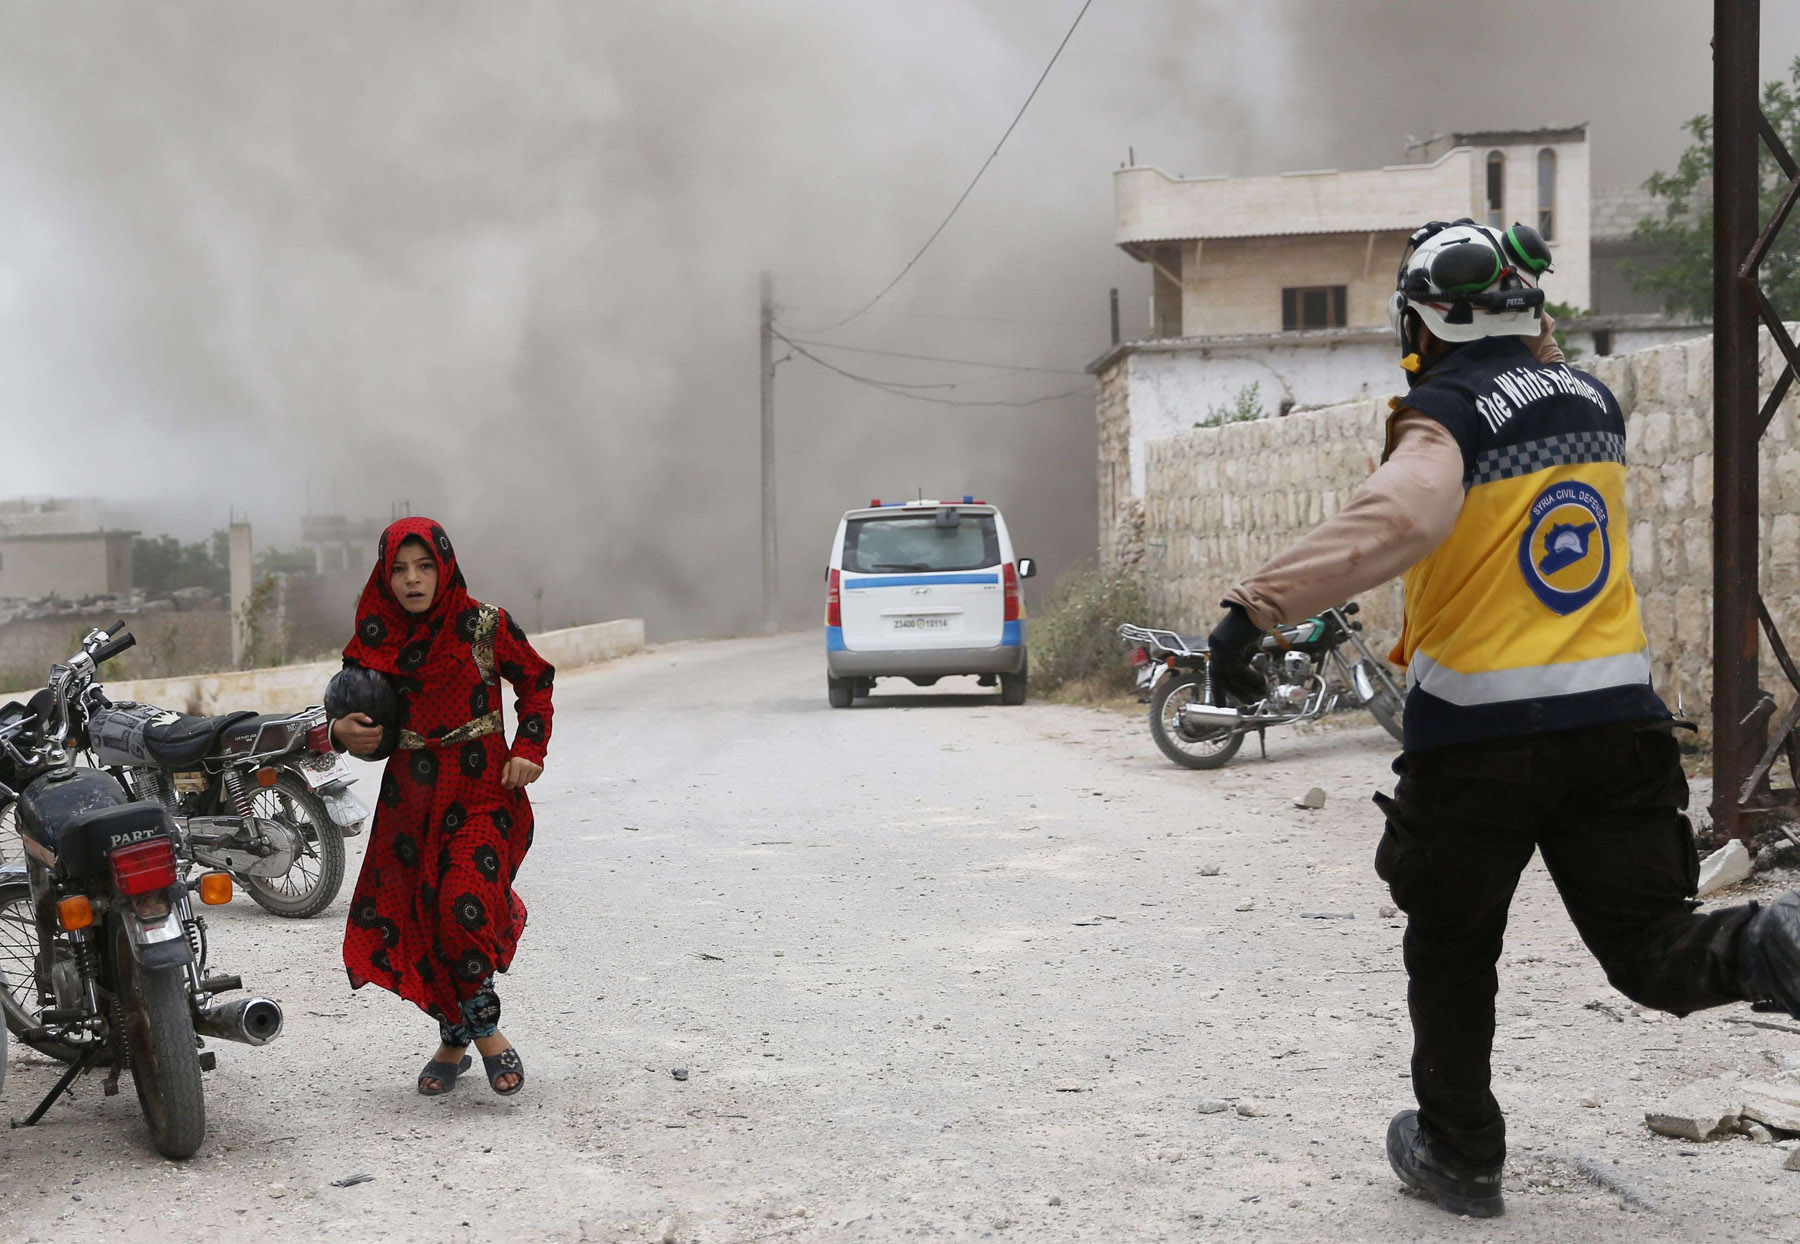 A Syrian civil defence rescuer runs past a girl trying to take cover during an air strike by pro-regime forces on the market town of Kfar Ruma in Syria's Idlib province, May 30. (AFP)